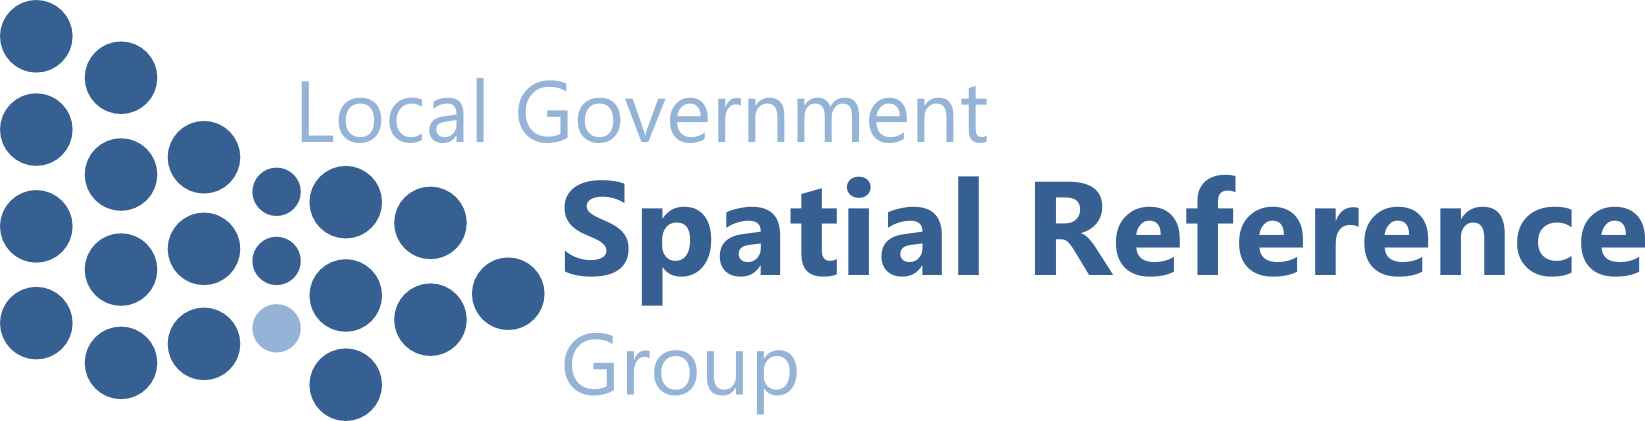 Local Government Spatial Reference Group logo